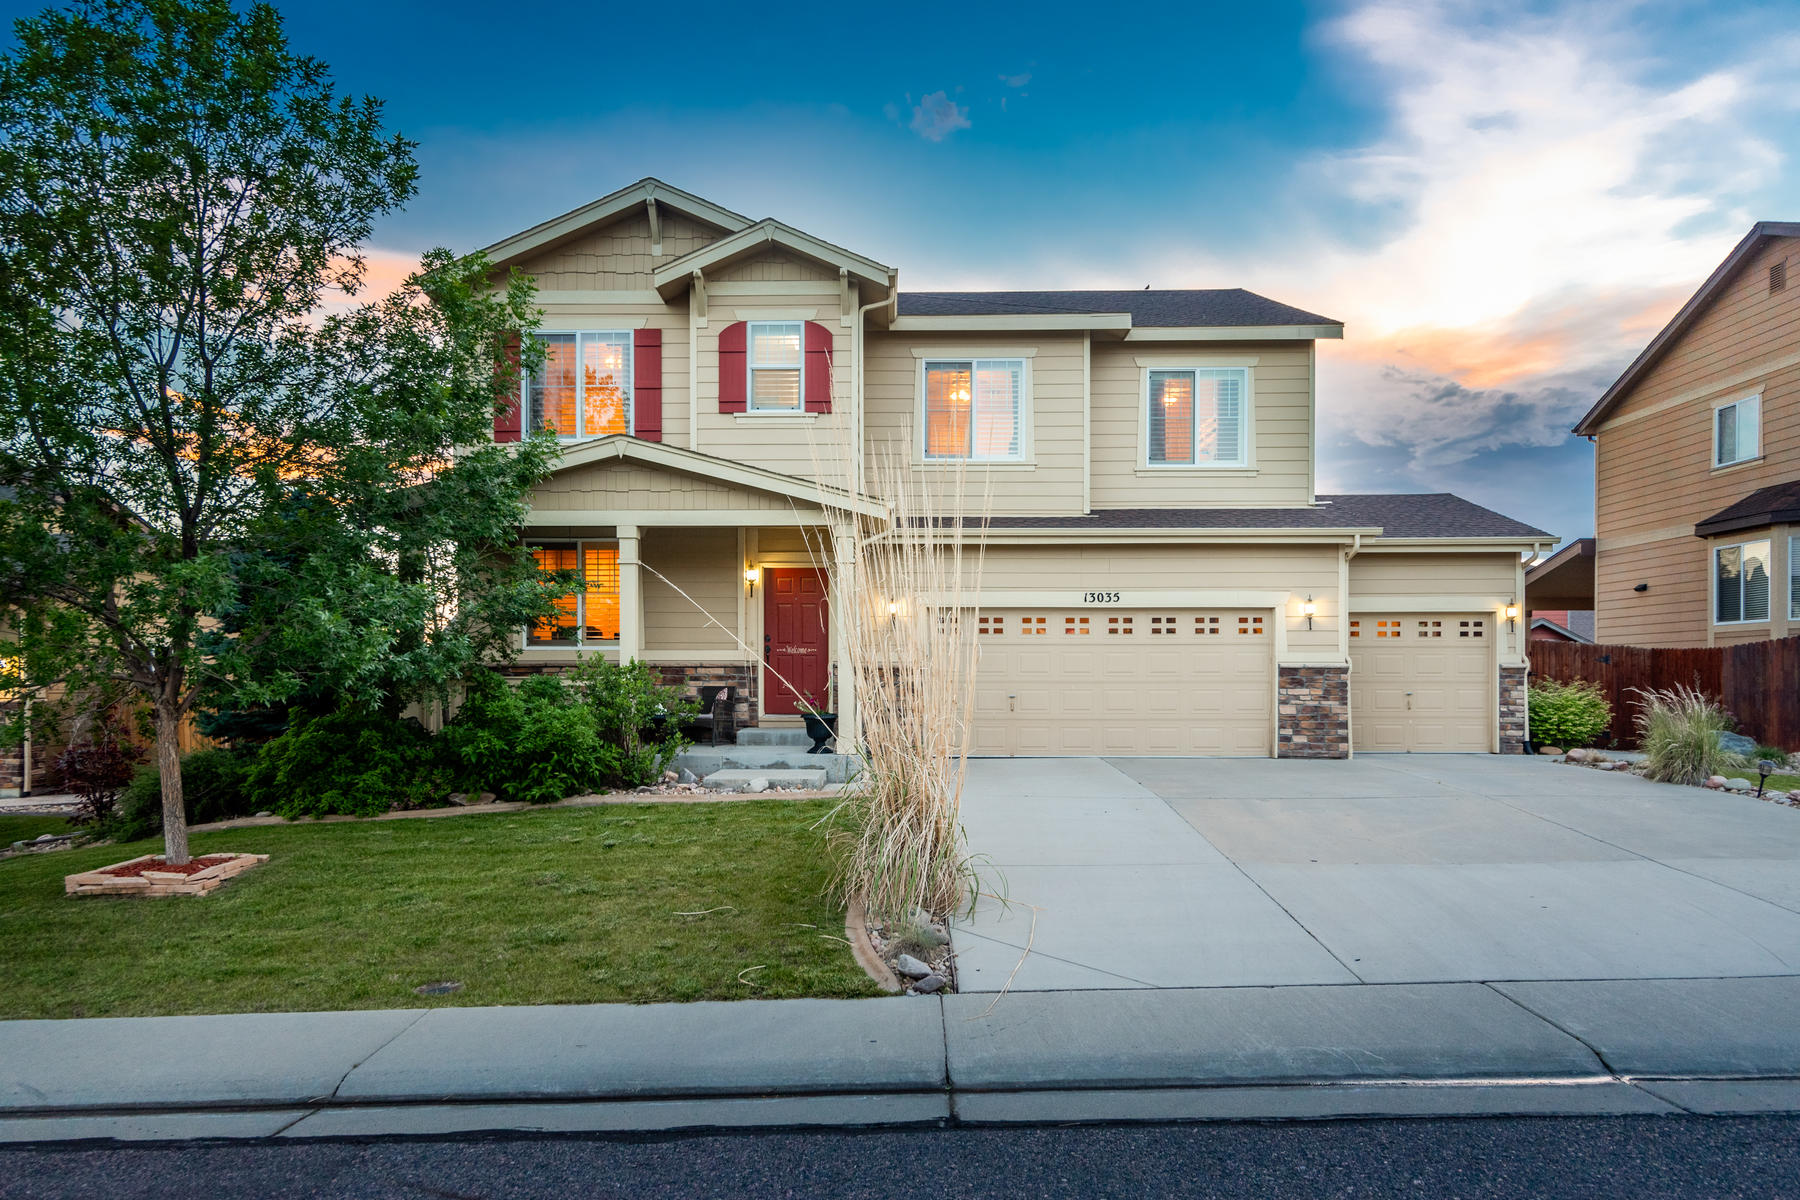 Single Family Homes for Sale at 4 bed 3 bath w/ home office in one of Thornton's most sought after neighborhoods 13035 Tamarac Pl Thornton, Colorado 80602 United States